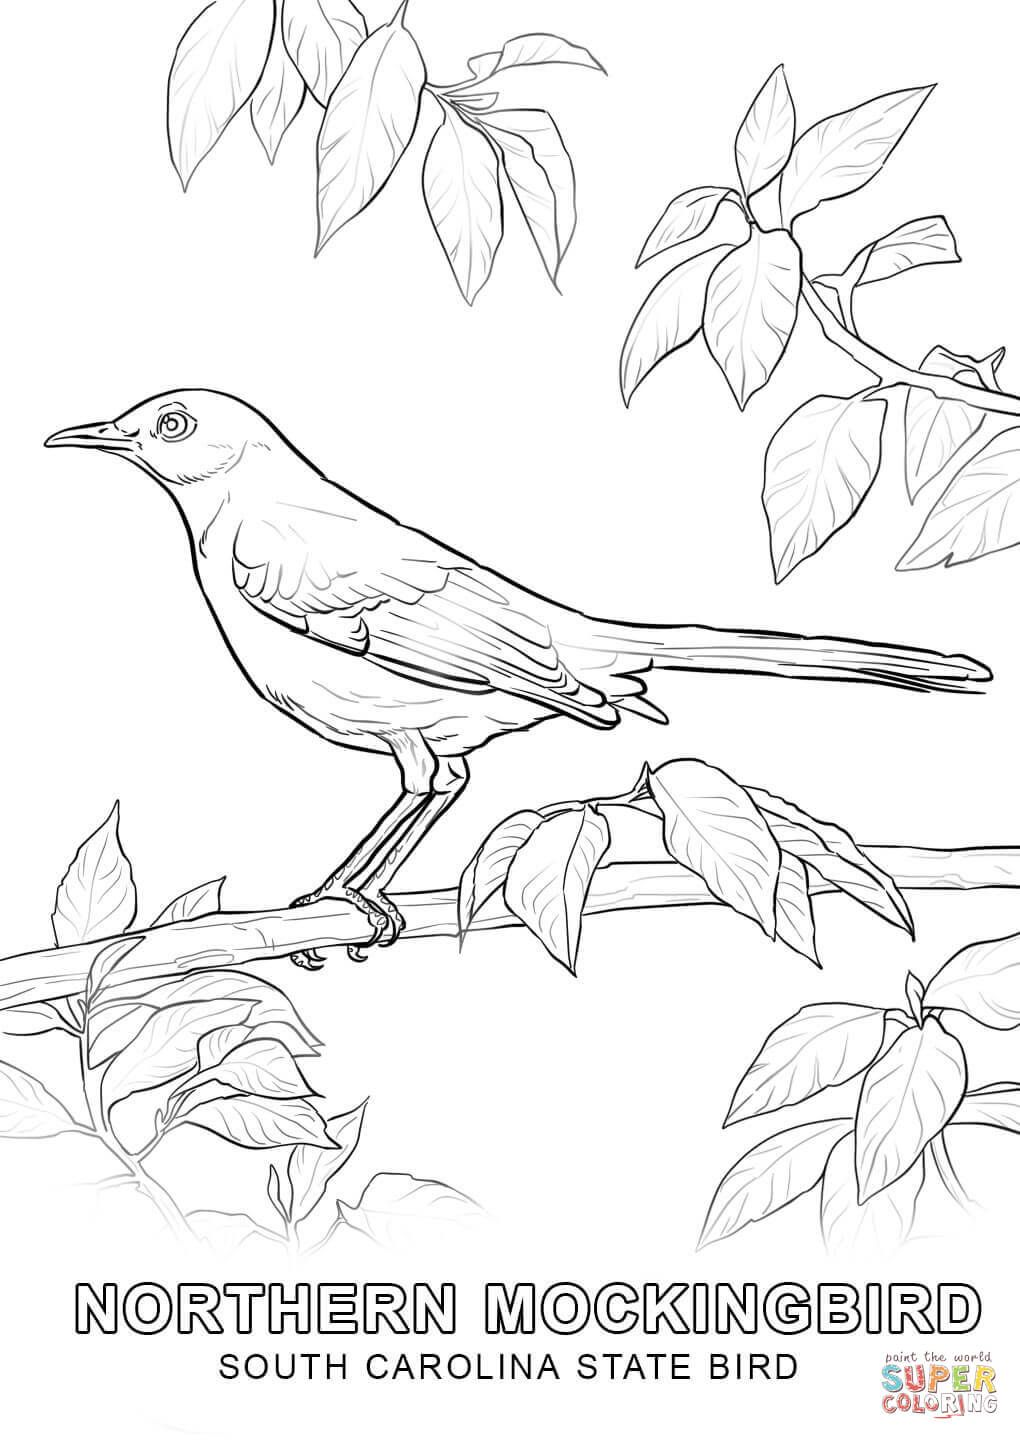 south carolina state bird coloring pagejpg 10201440